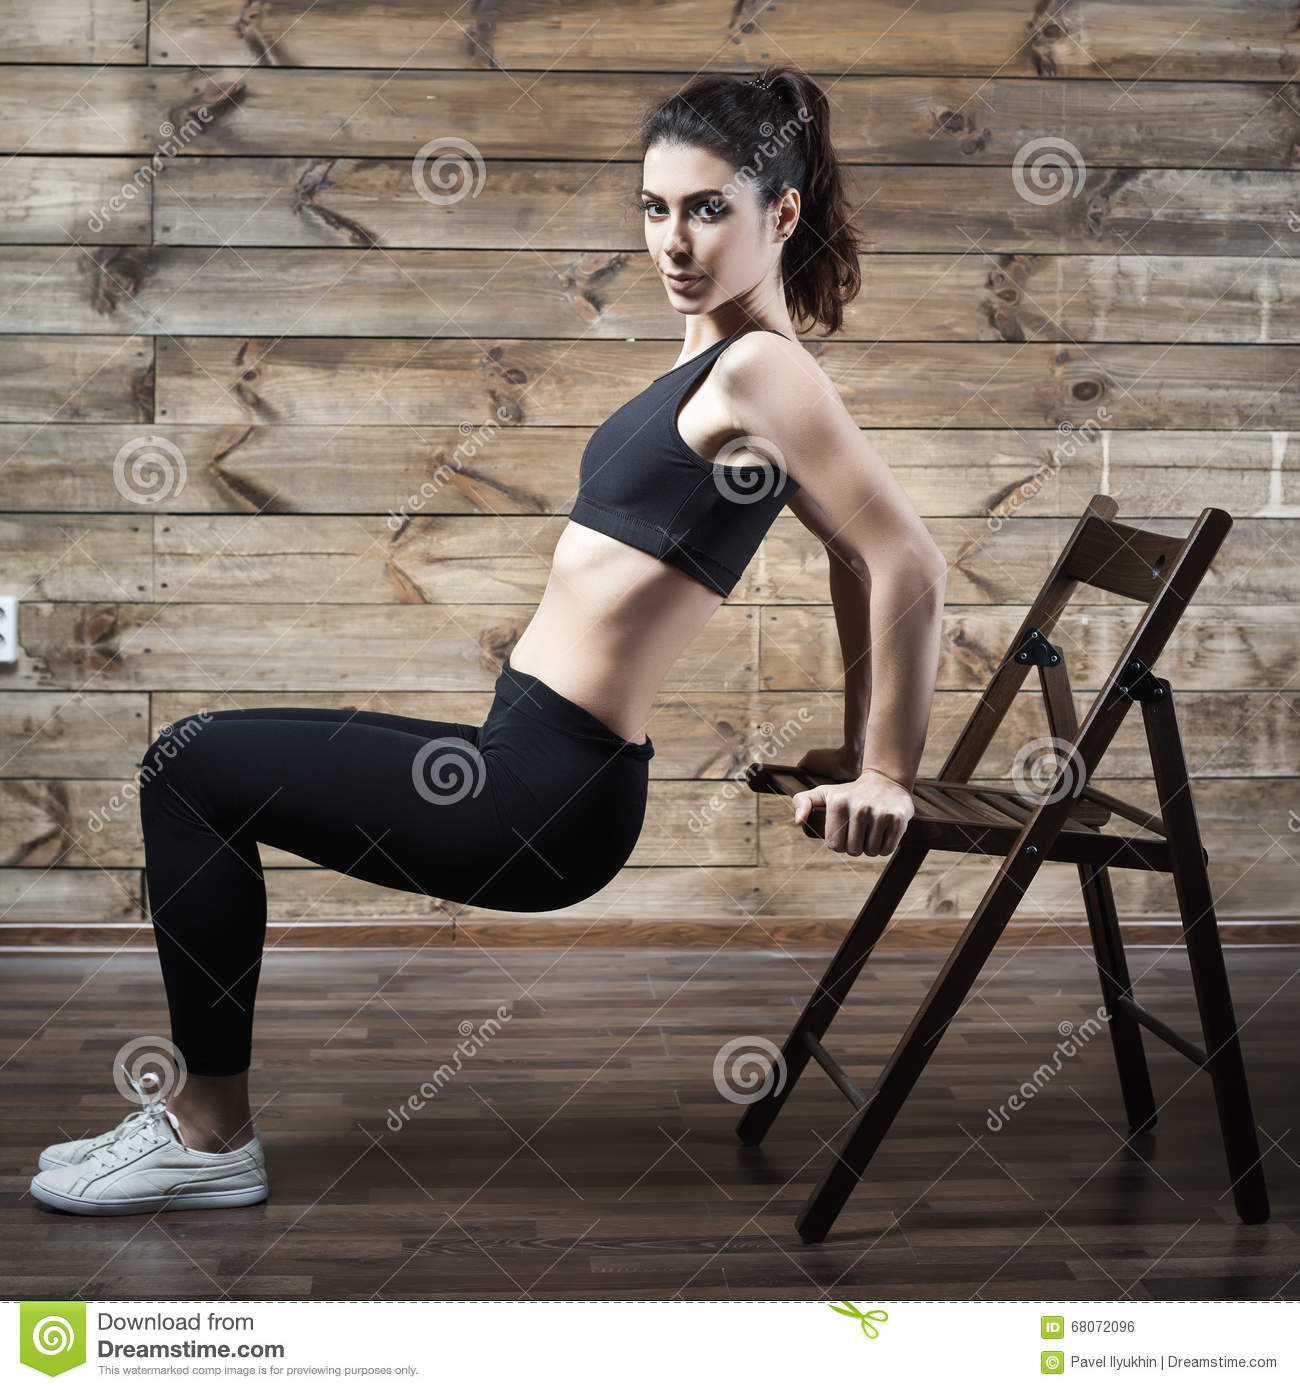 Woman Pilates Chair Exercises Fitness Stock Photo: Workout Exercises At Home To Lose Weight. Woman Training